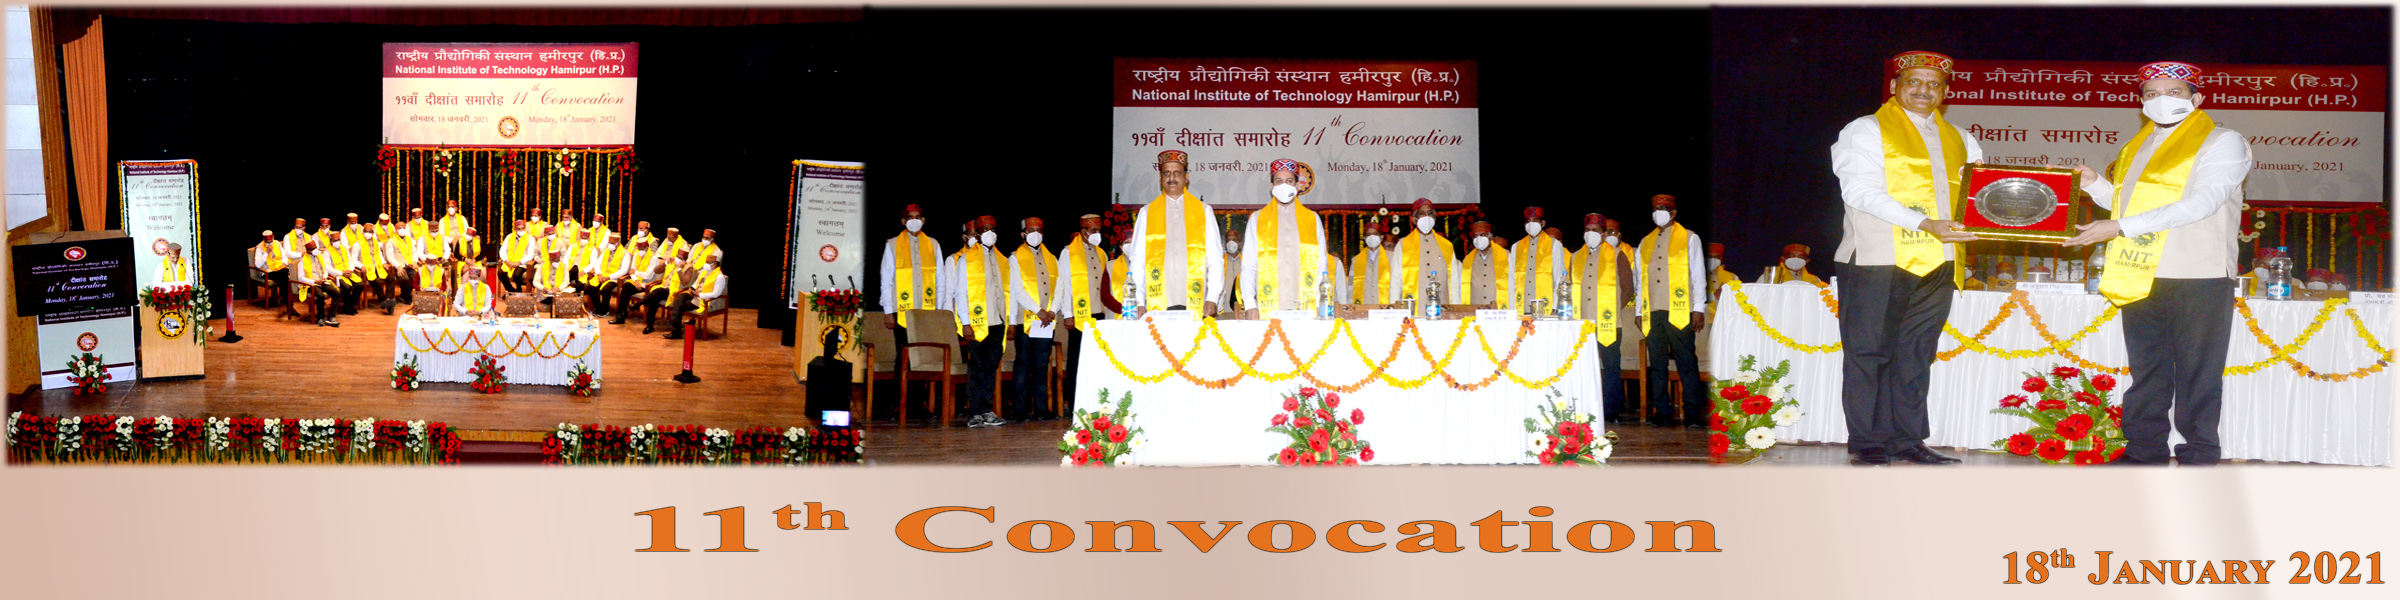 11th Convocation NIT Hamirpur 2